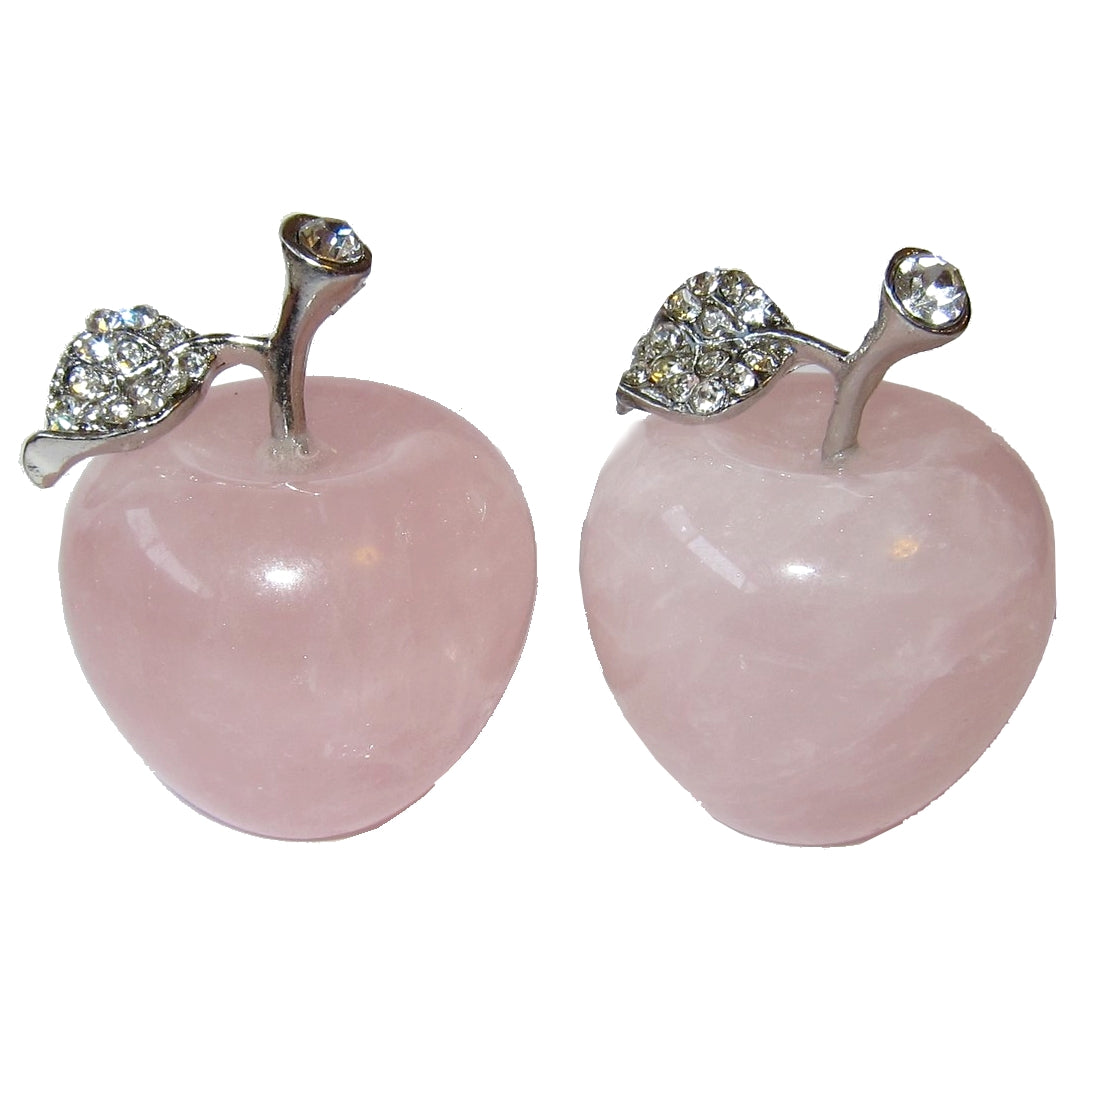 "Rose Quartz Gift Apple 1.5"" Premium Pair of Pink Stones Love Energy Gratitude Fruit P02"